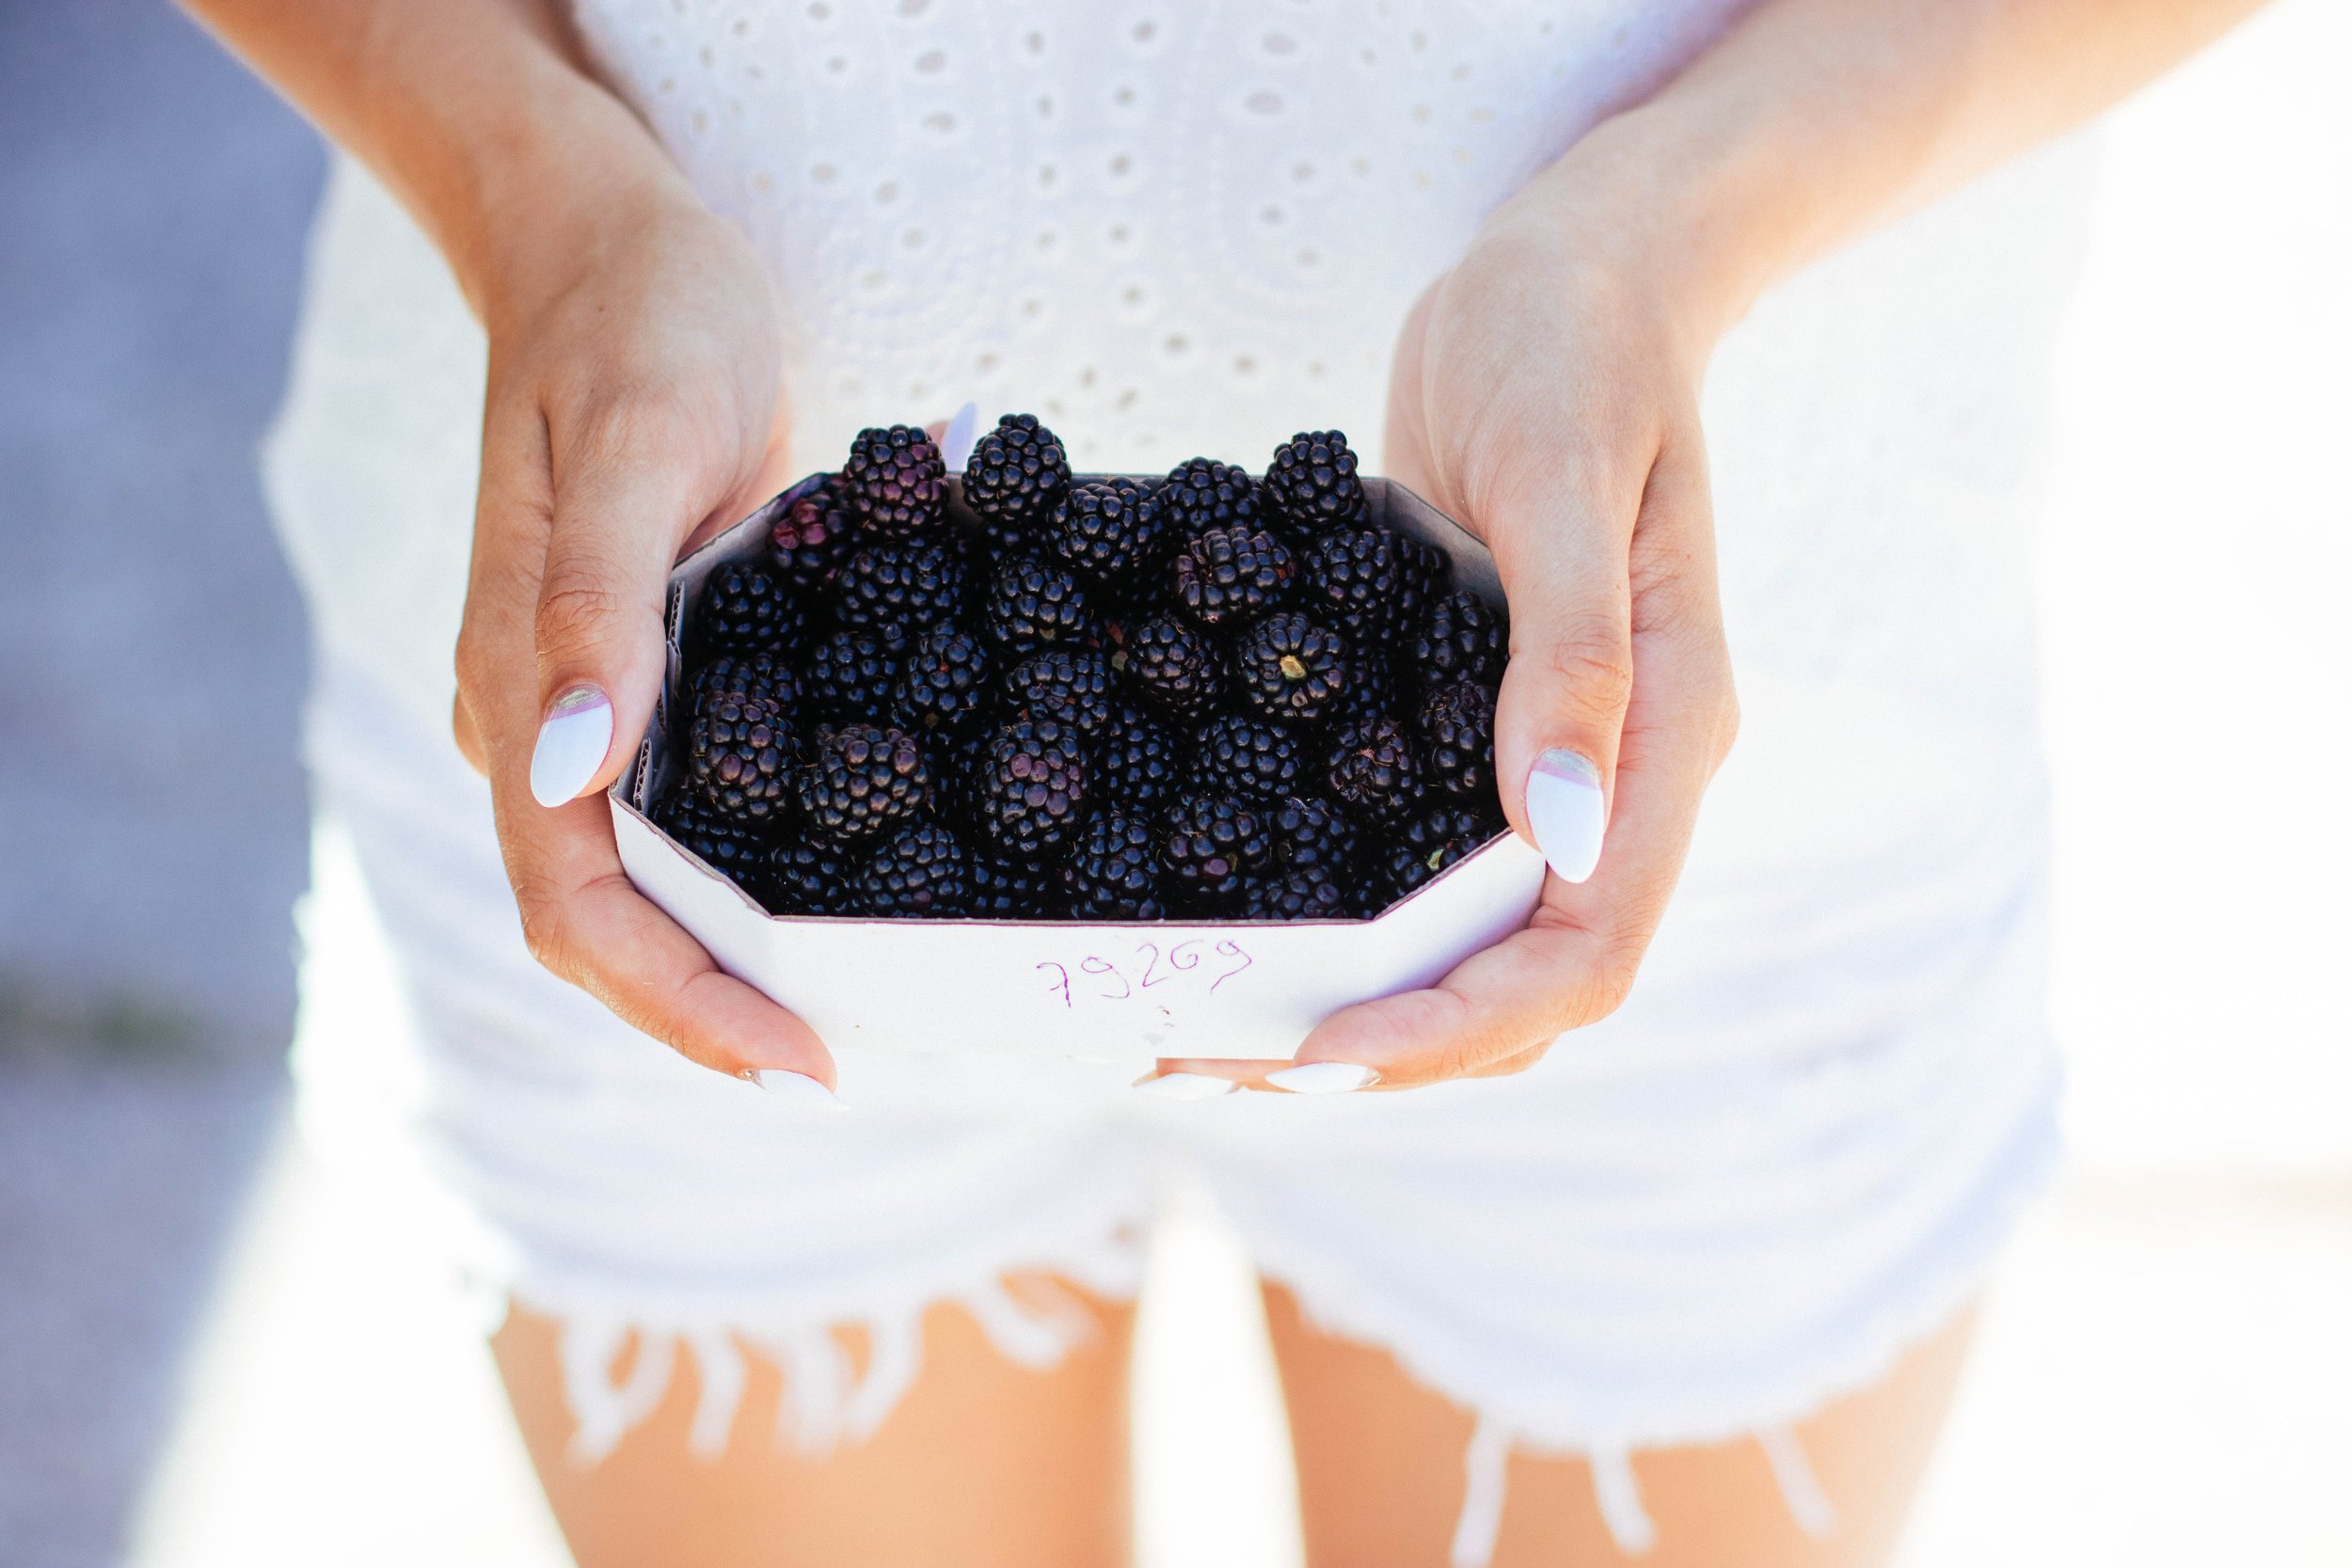 blackberries-blackberry-bowl-701774.jpg